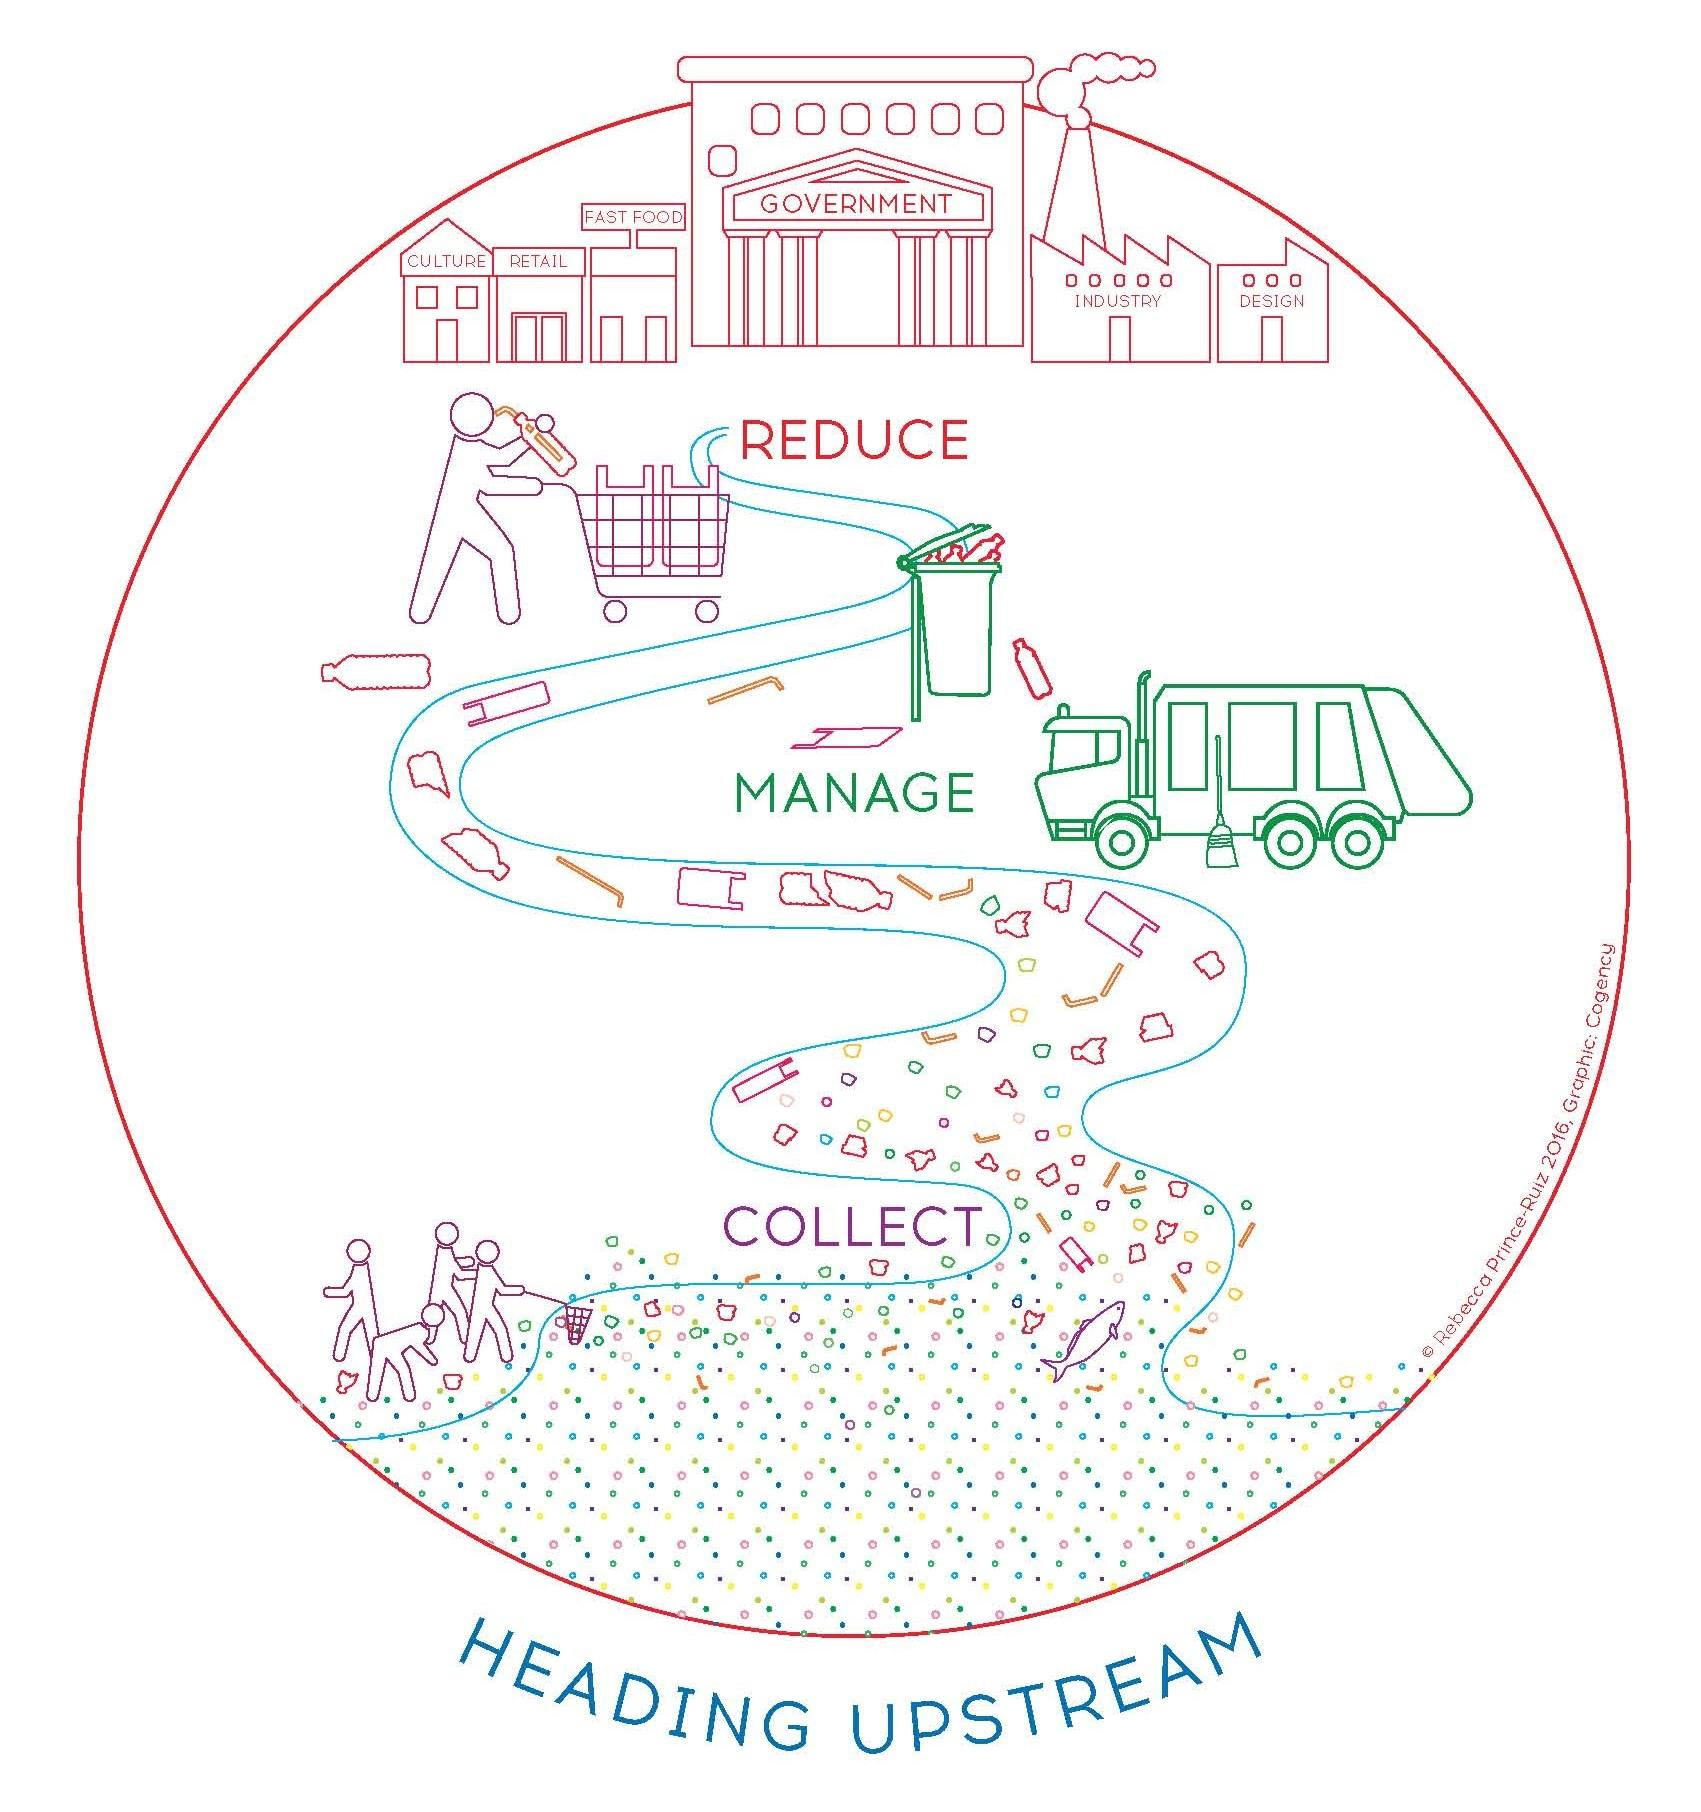 Heading Upstream: A Framework to Address the Plastic Pollution Problem (R.Prince-Ruiz)